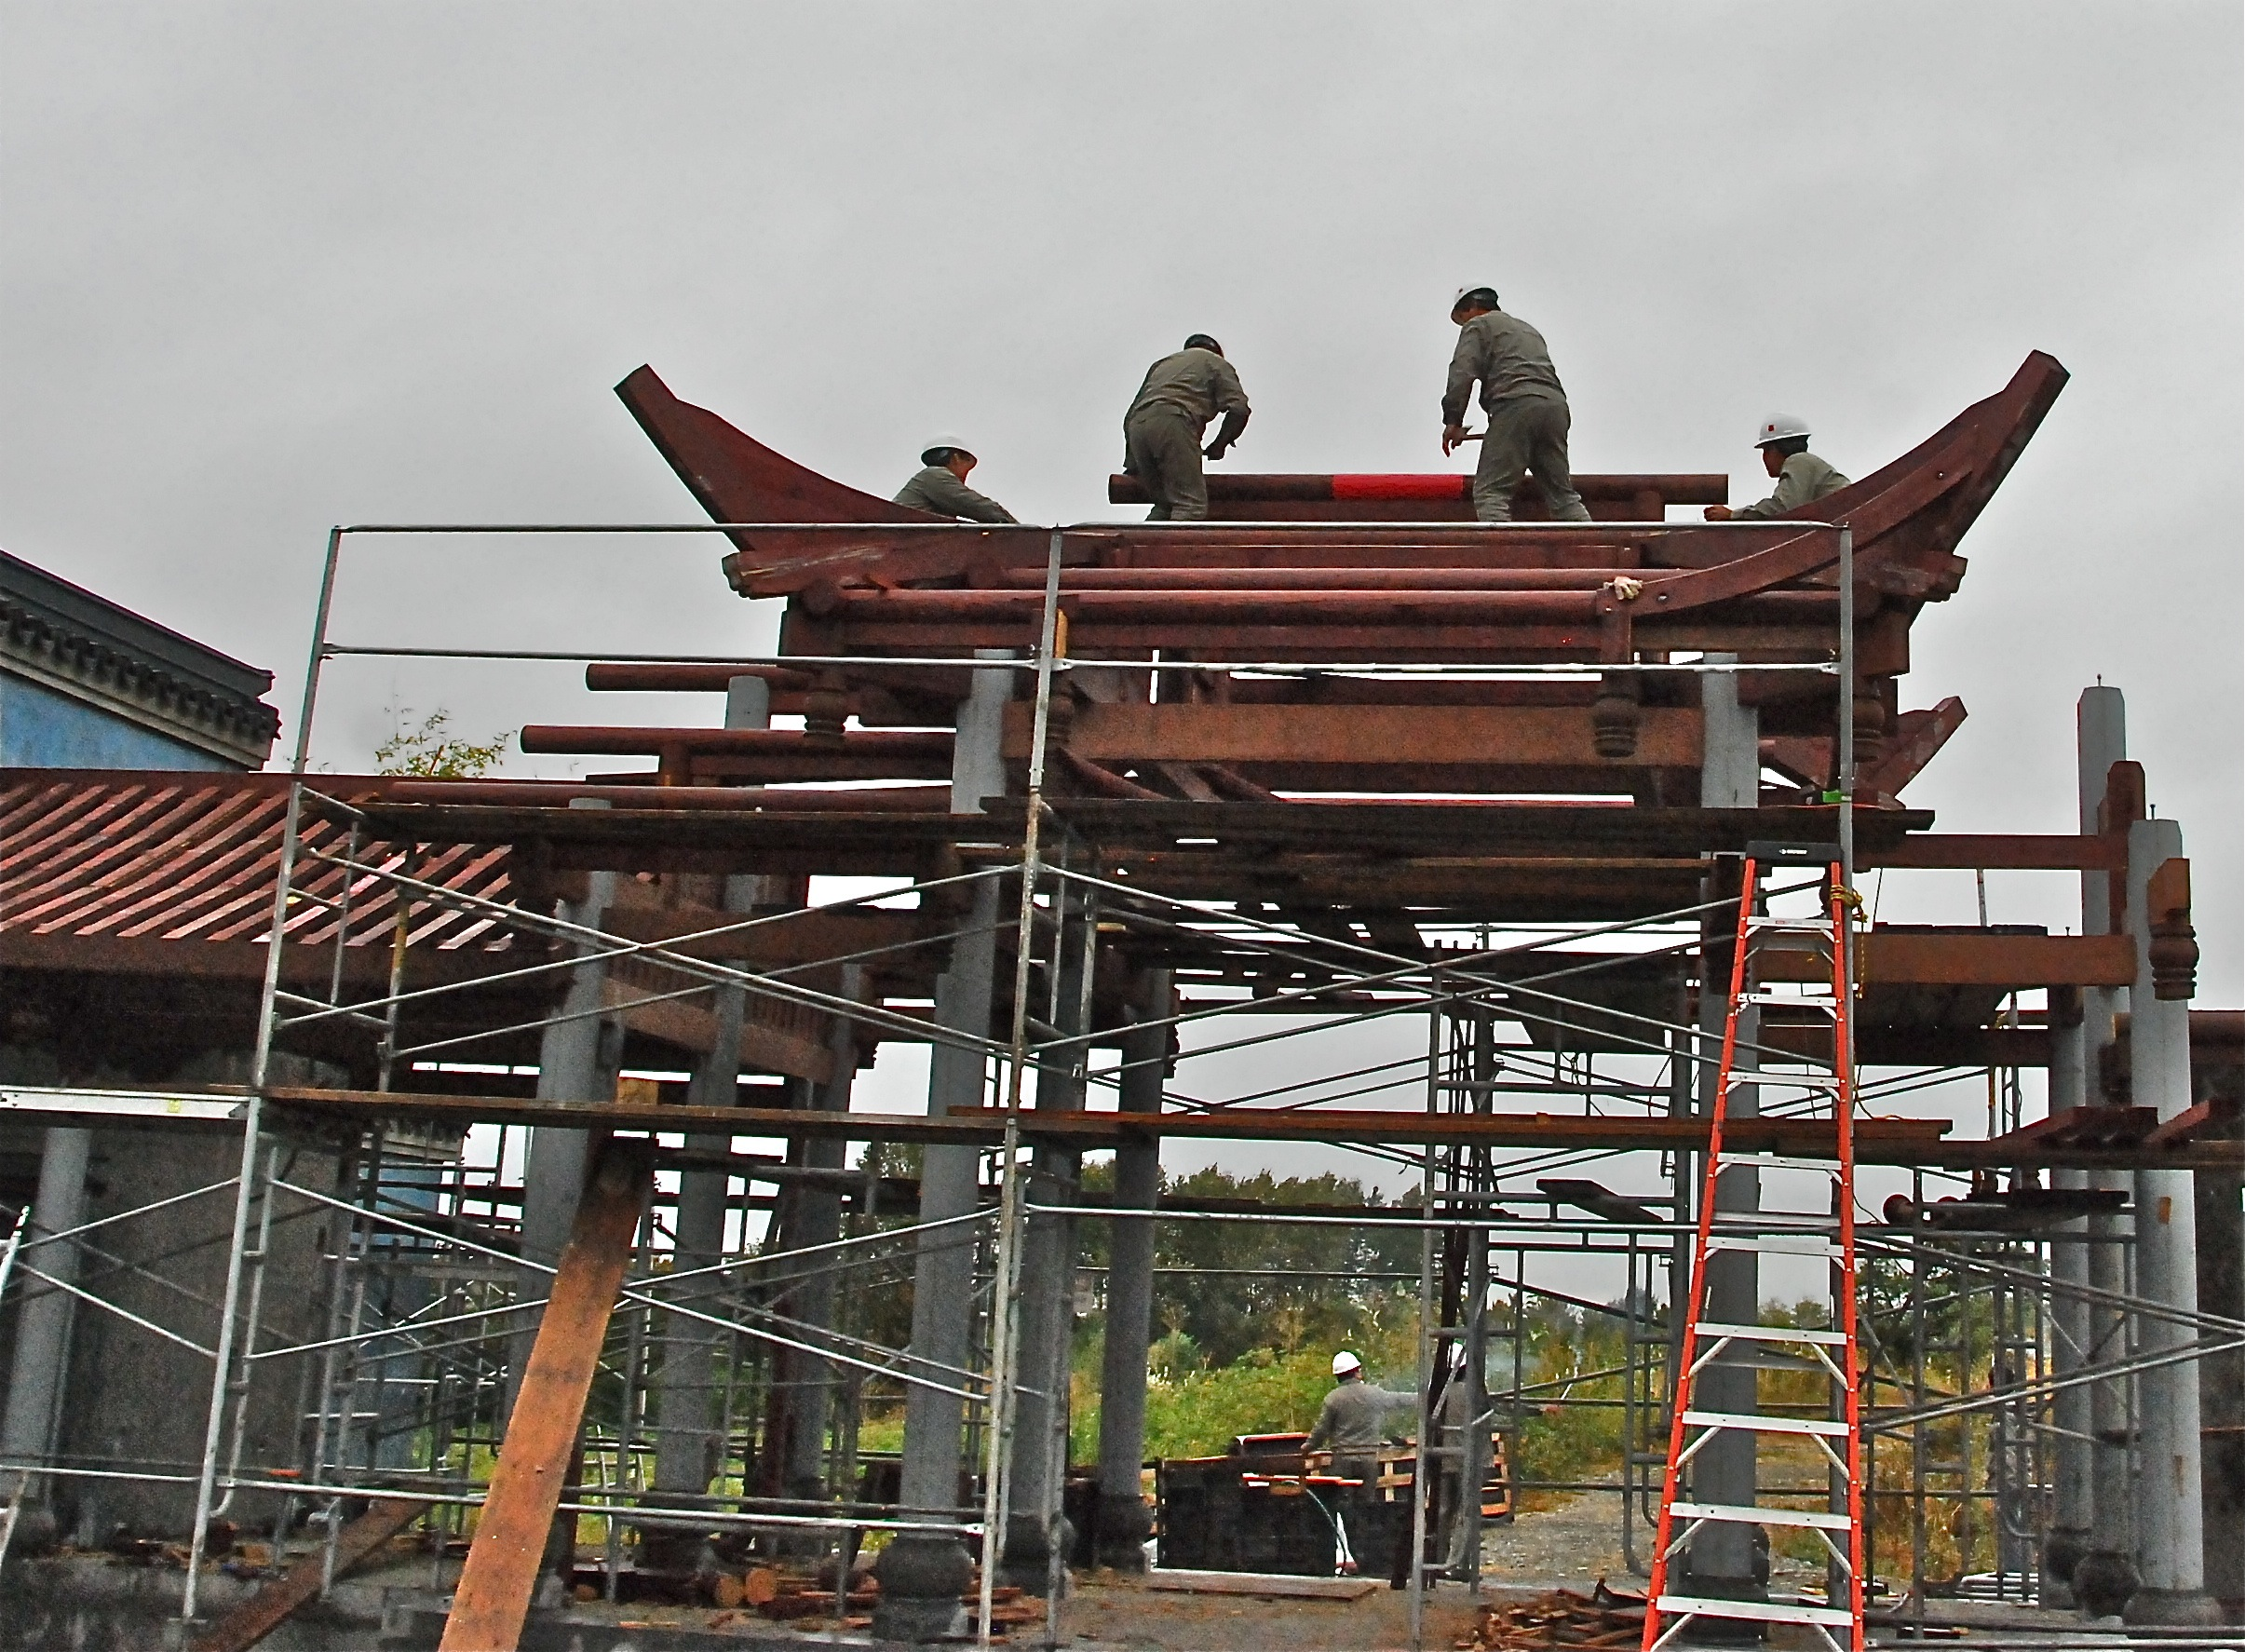 the top beam above the ceremonial gate of the knowing the spring courtyard in the seattle chinese garden was placed on aug 31 shortly after 5 pm - Seattle Chinese Garden